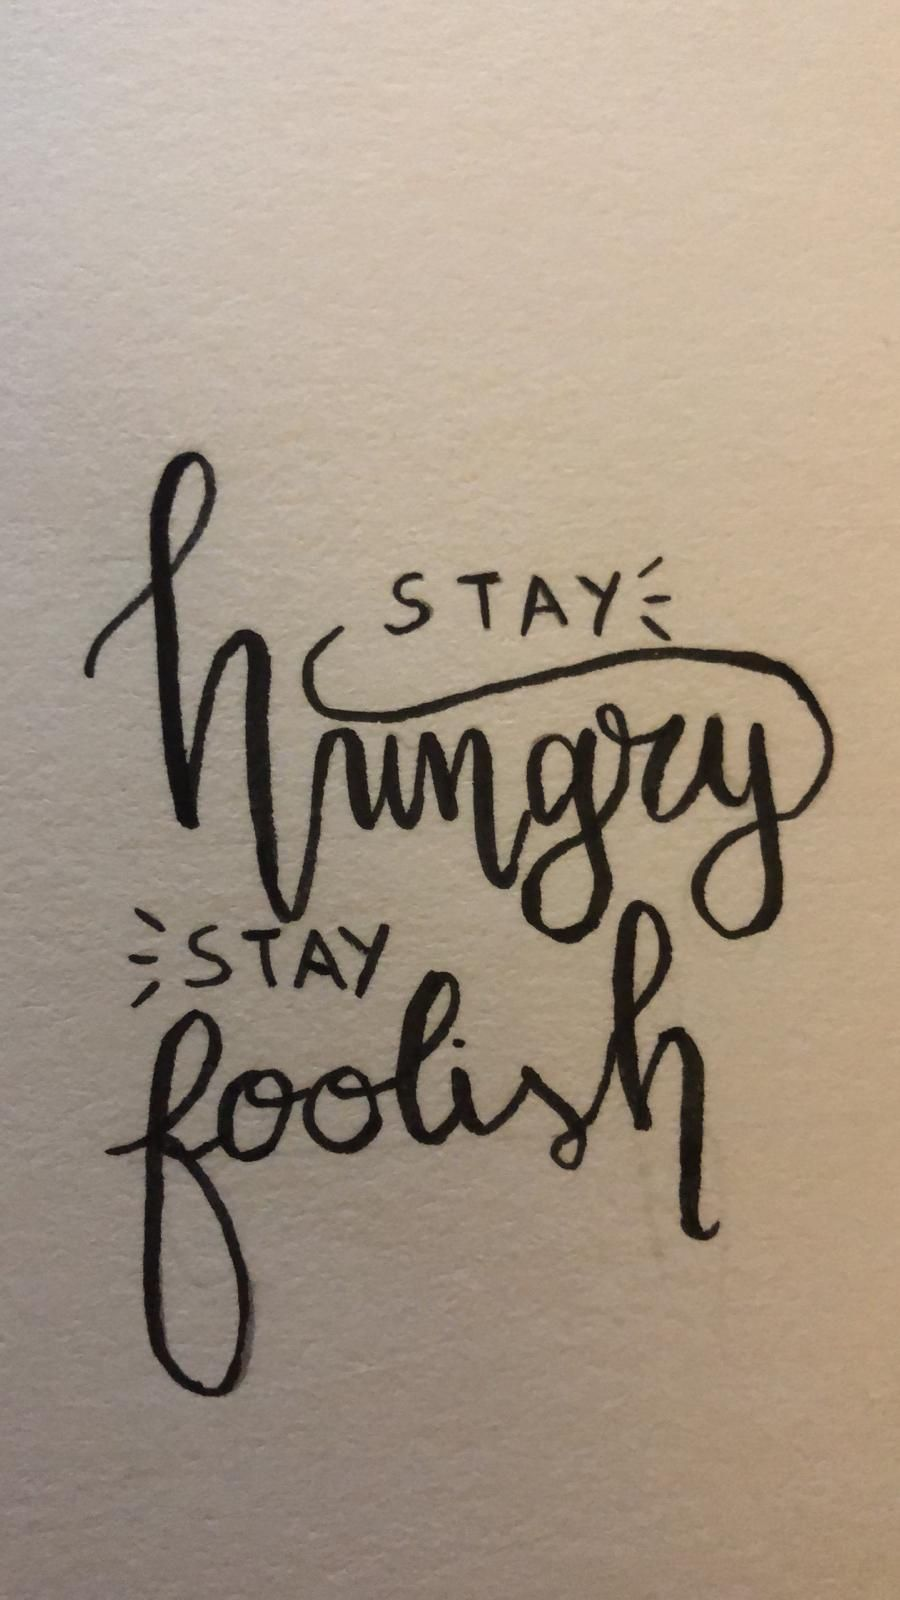 Stay hungry Stay foolish - image 1 - student project